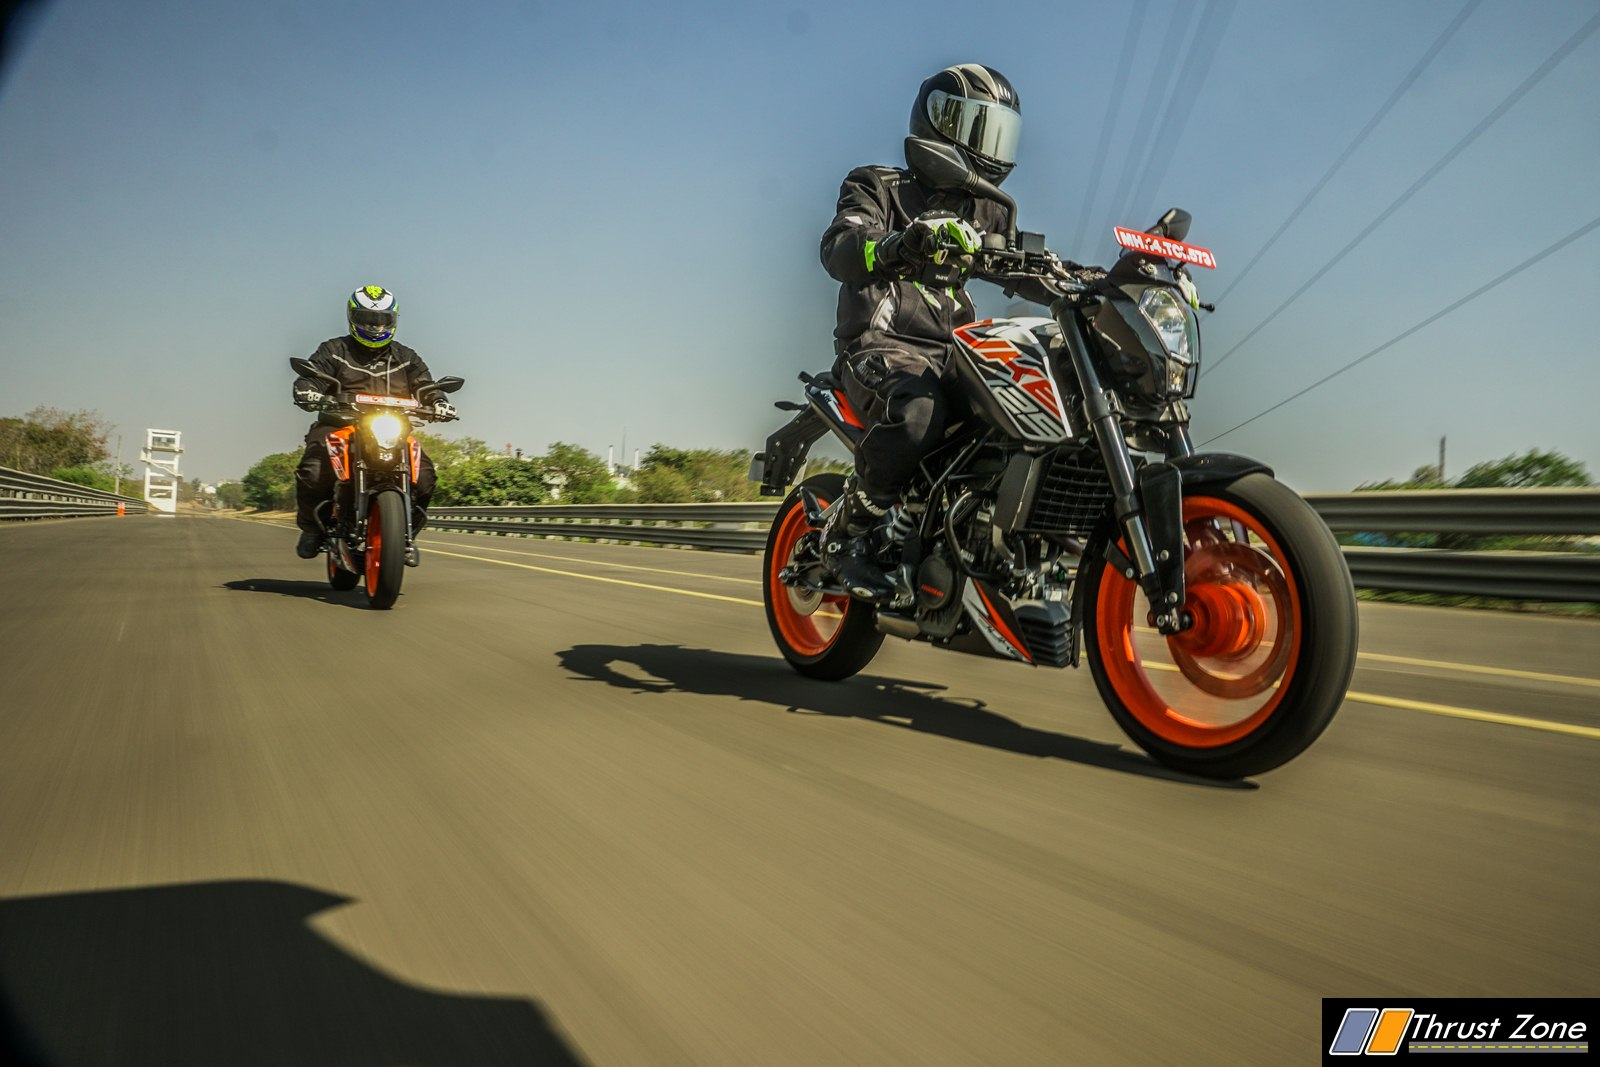 https://www.thrustzone.com/wp-content/uploads/2018/12/2018-KTM-DUKE-125-INDIA-Review-9.jpg